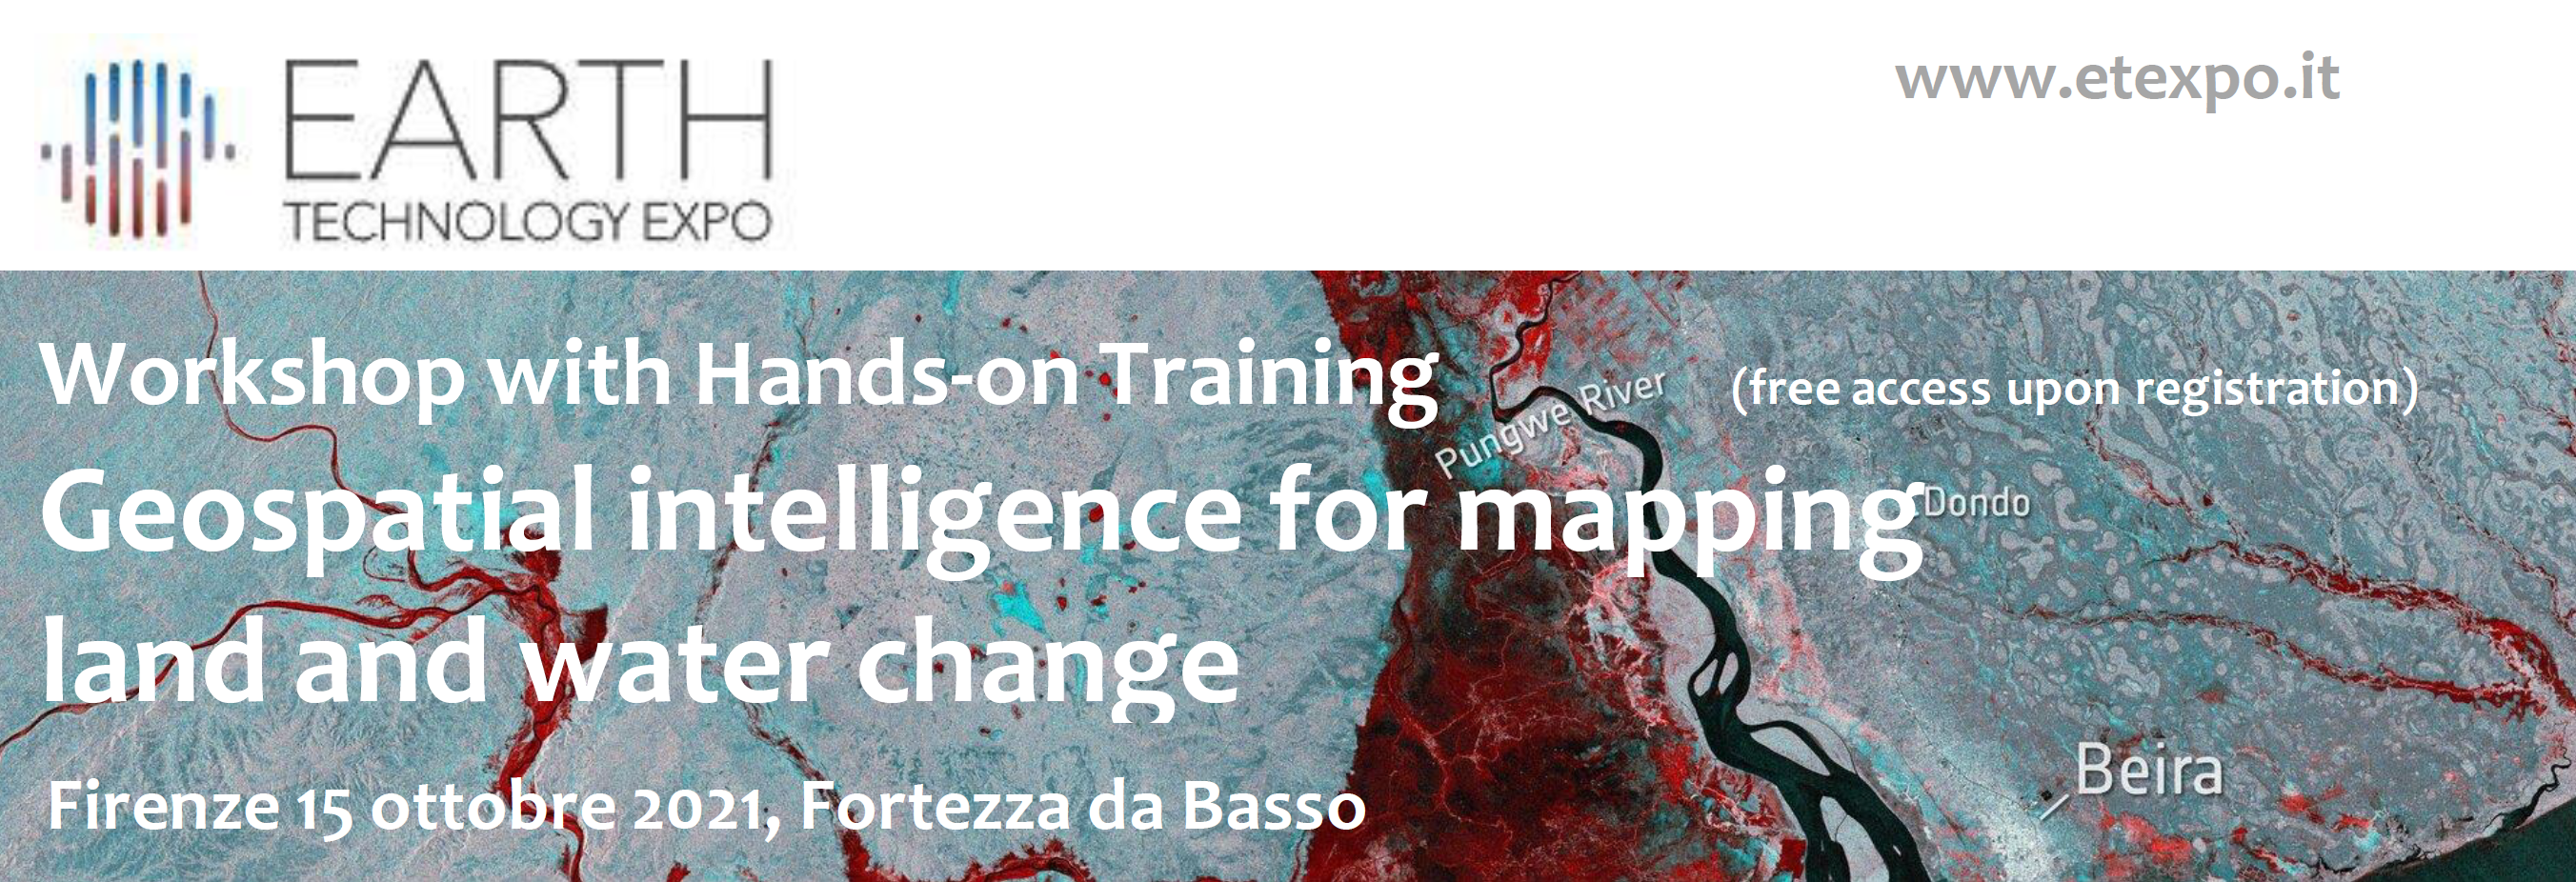 Geospatial intelligence for mapping land and water change